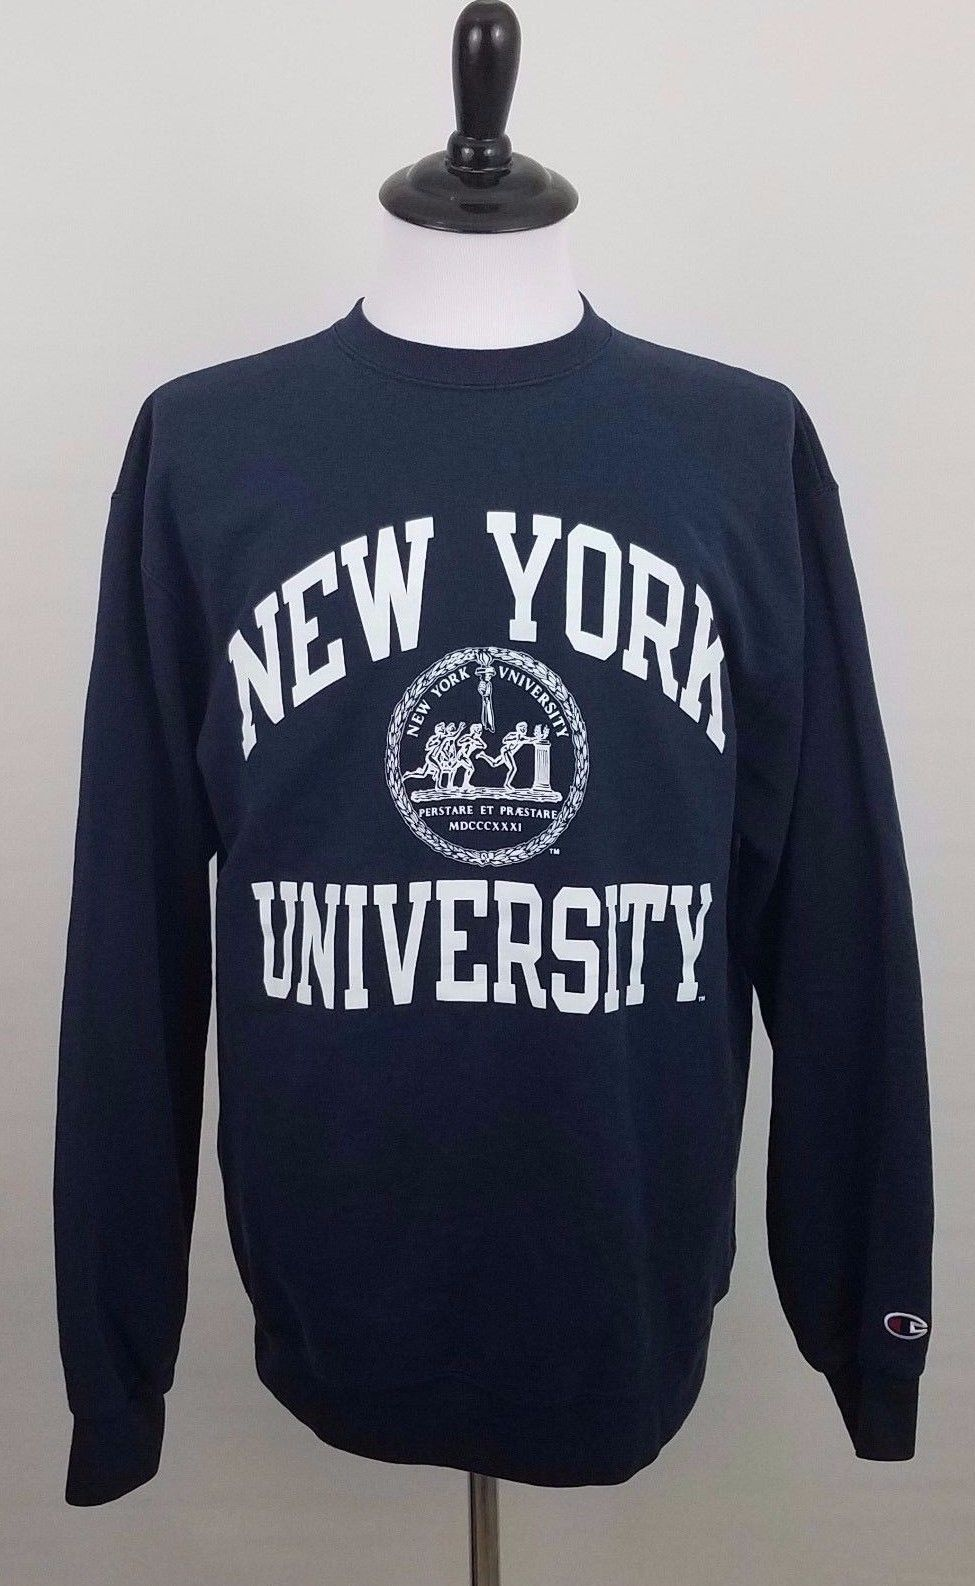 Vintage New York University NYU Navy Champion Sweater Size L (C31) Supreme  Bape 01001a478